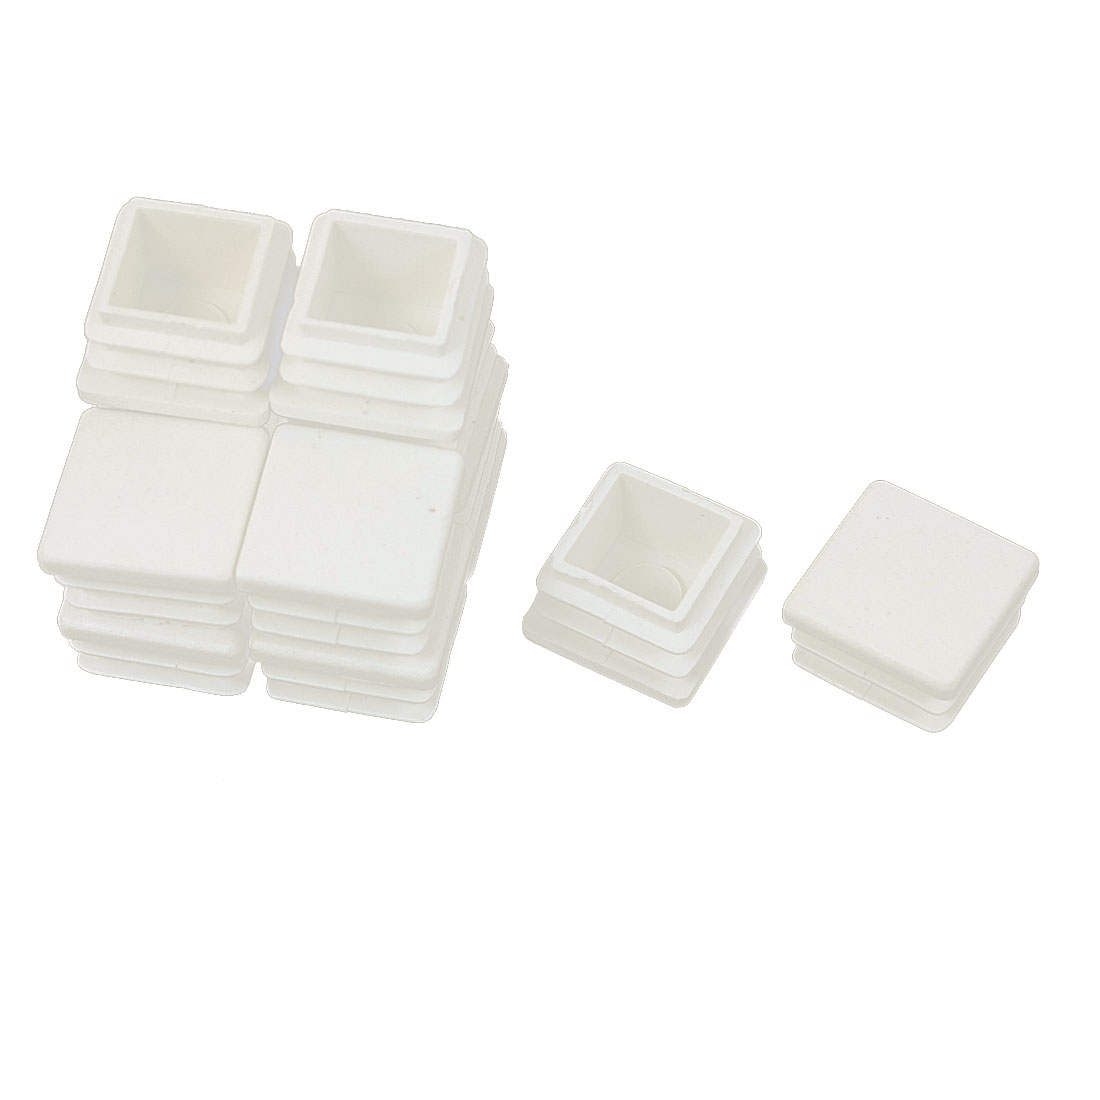 12 Pcs Plastic Square Blanking End Caps Tubing Tube Inserts 20mm x 20mm